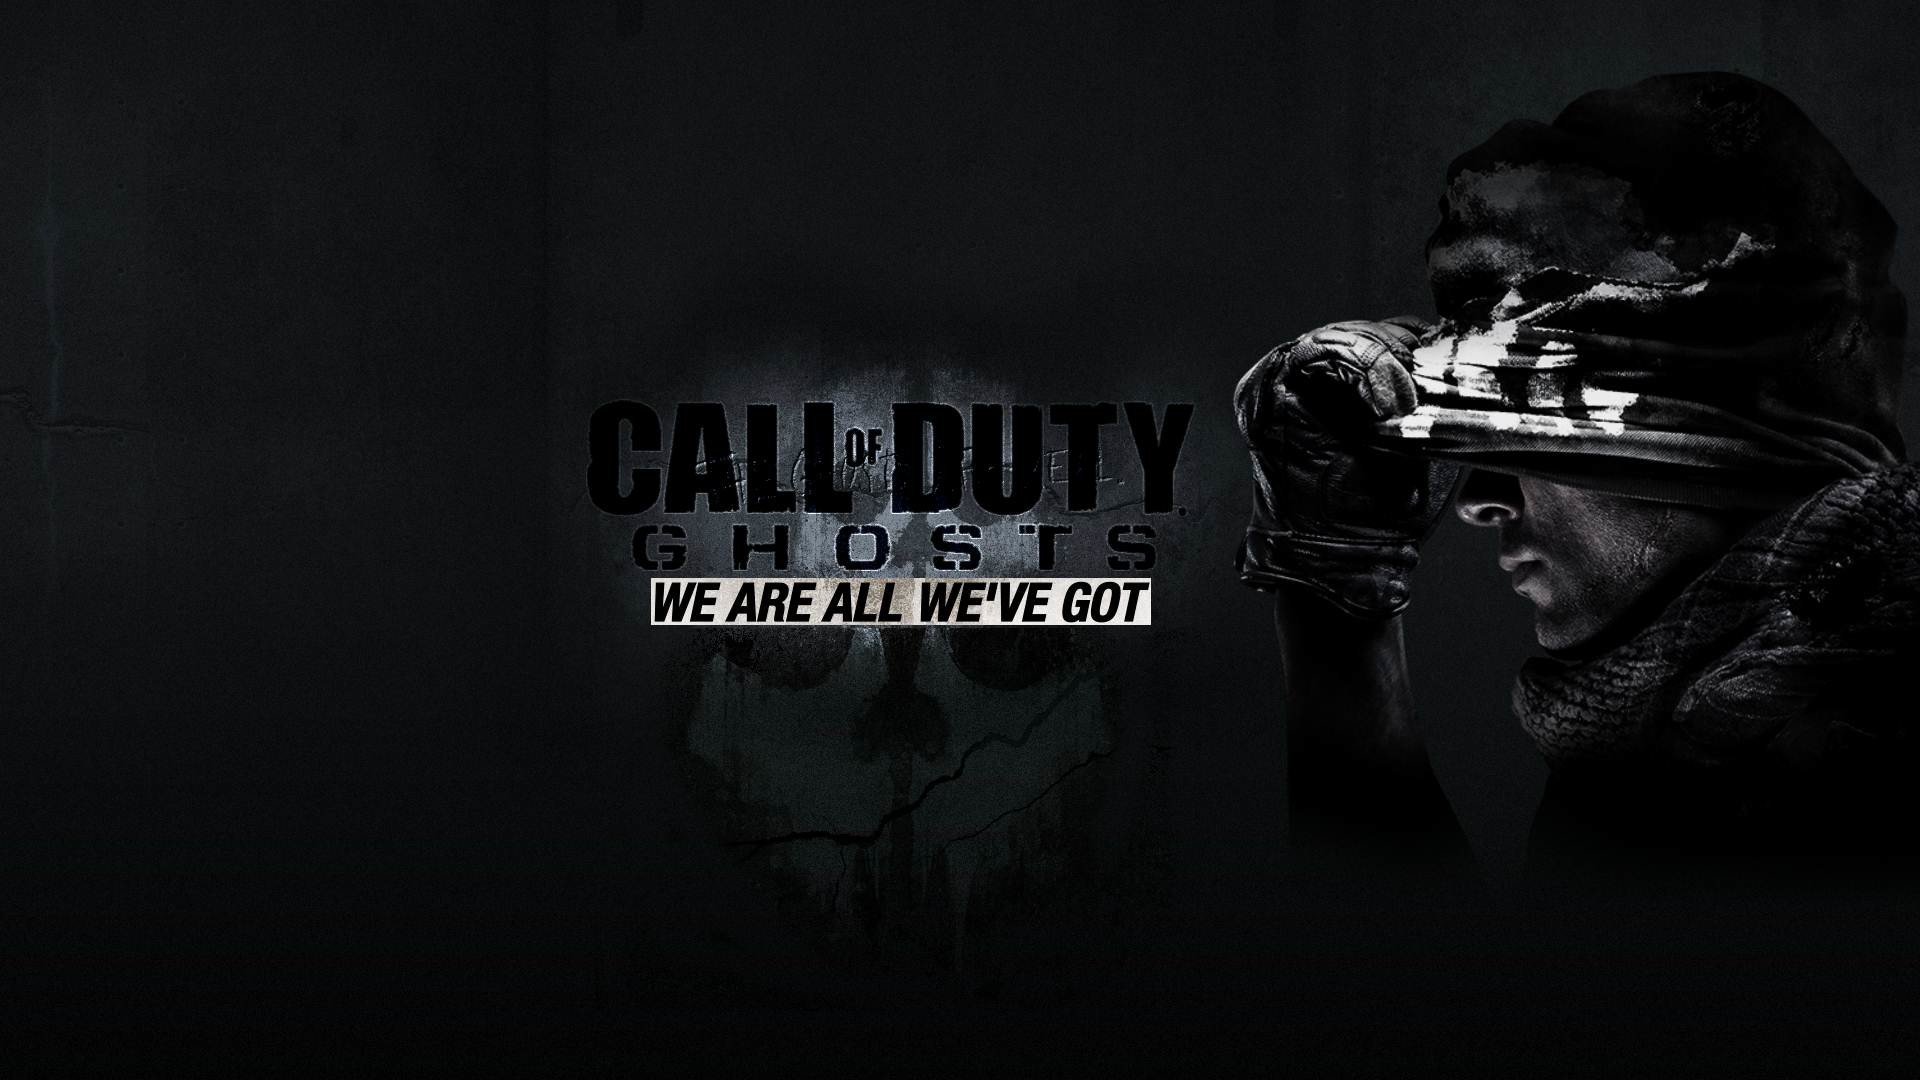 Call Of Duty Ghost 2018 Wallpaper Wallpapertag